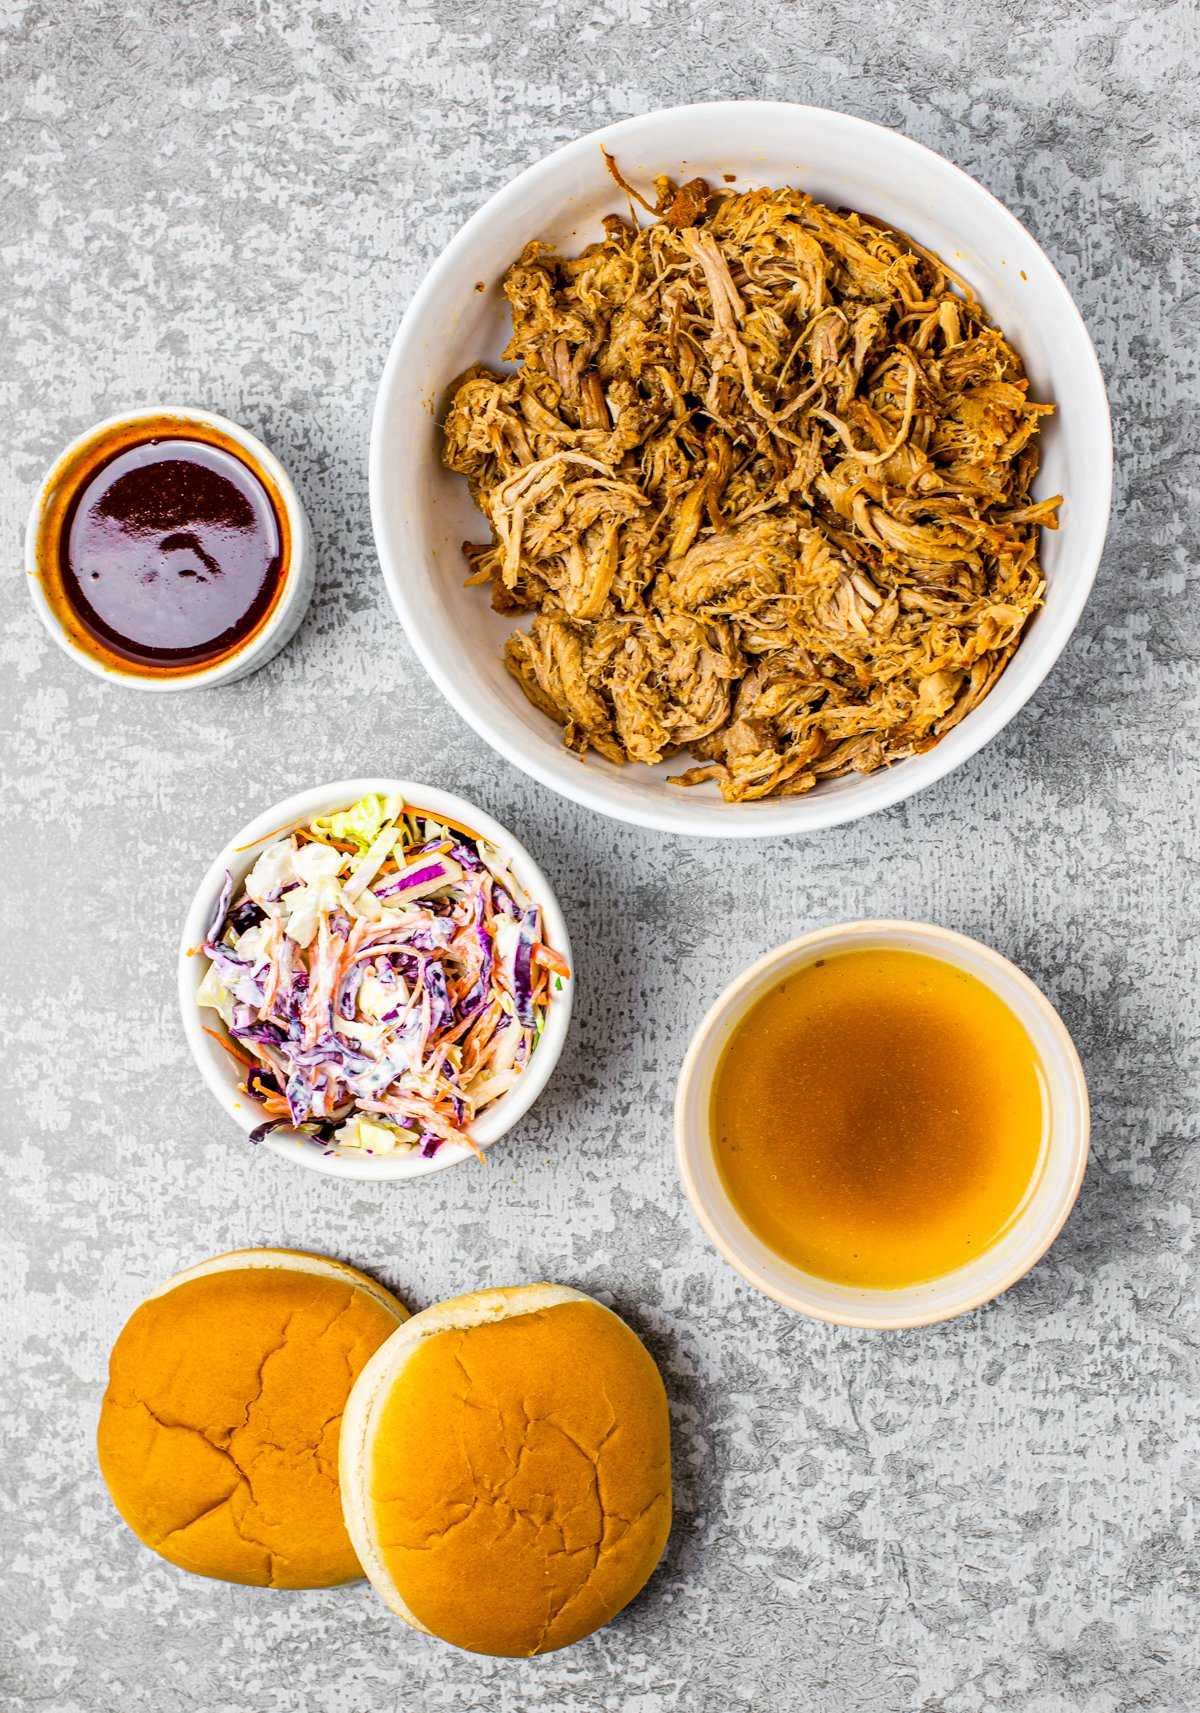 Ingredients needed to make Crock Pot Pulled Pork Sandwiches